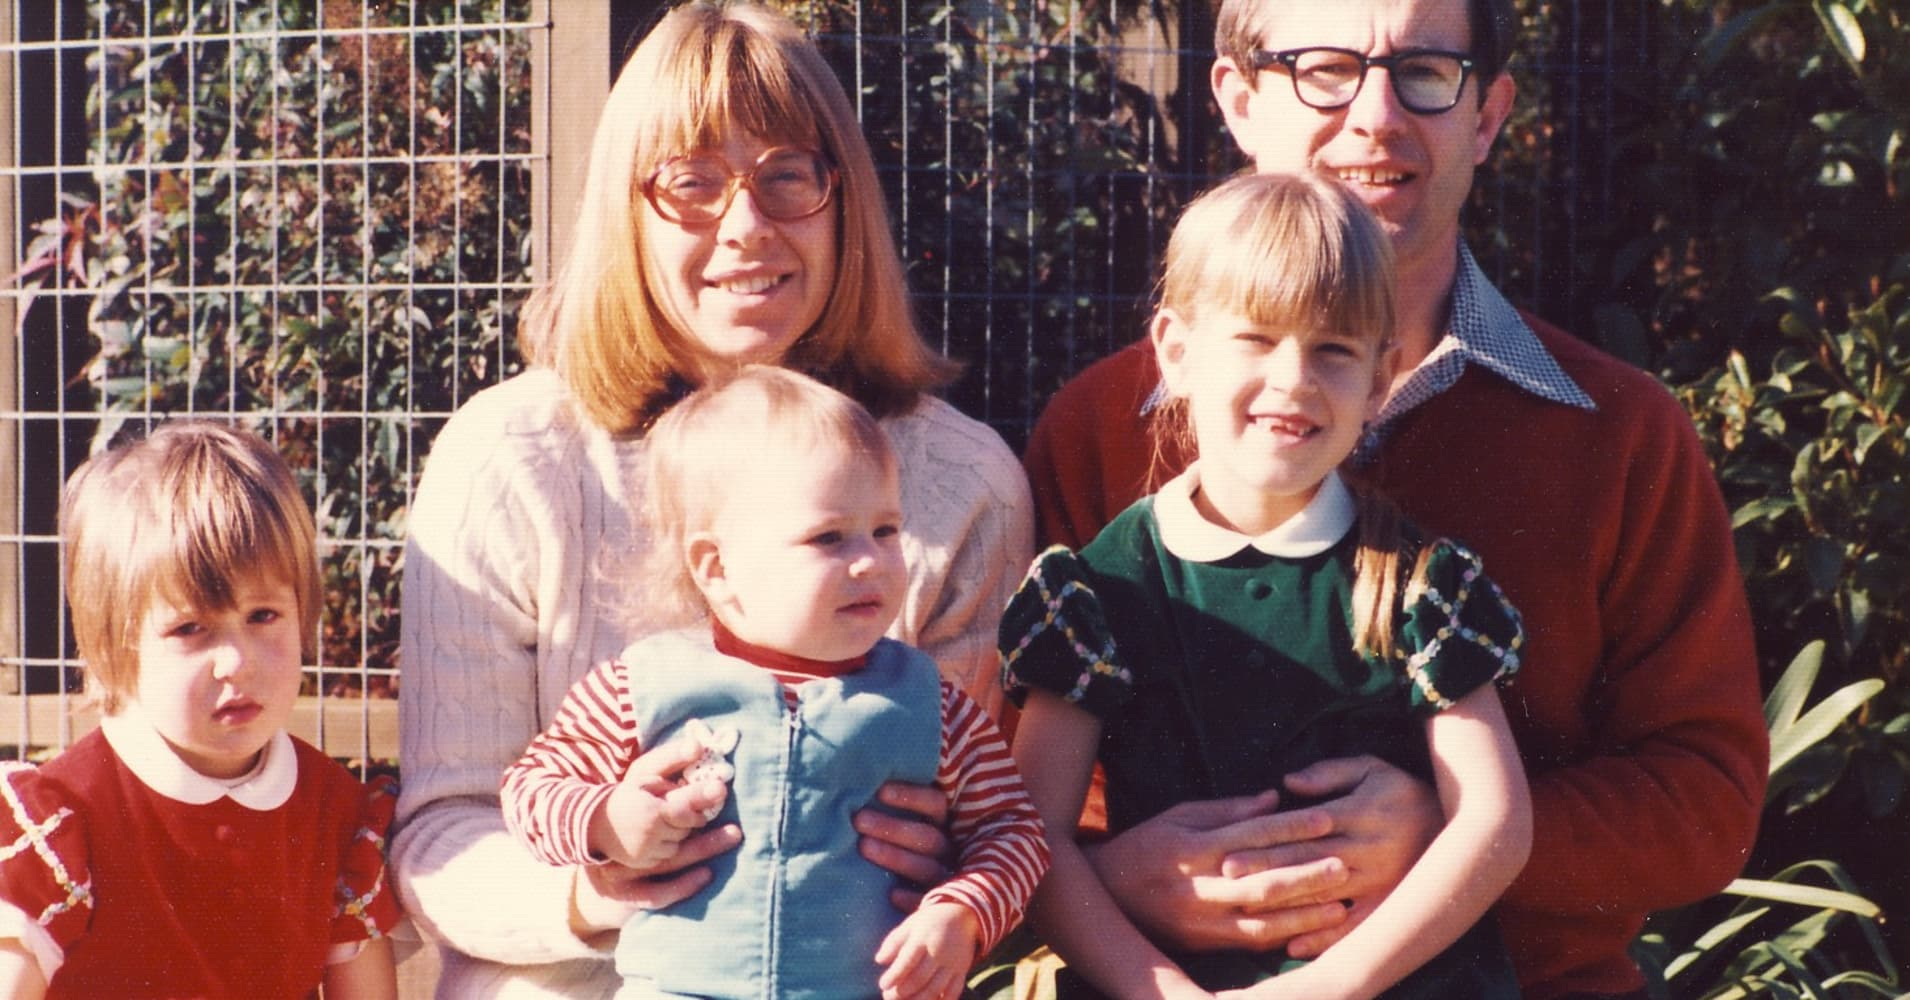 How the Wojcickis' parents raised 23andMe founder, YouTube CEO